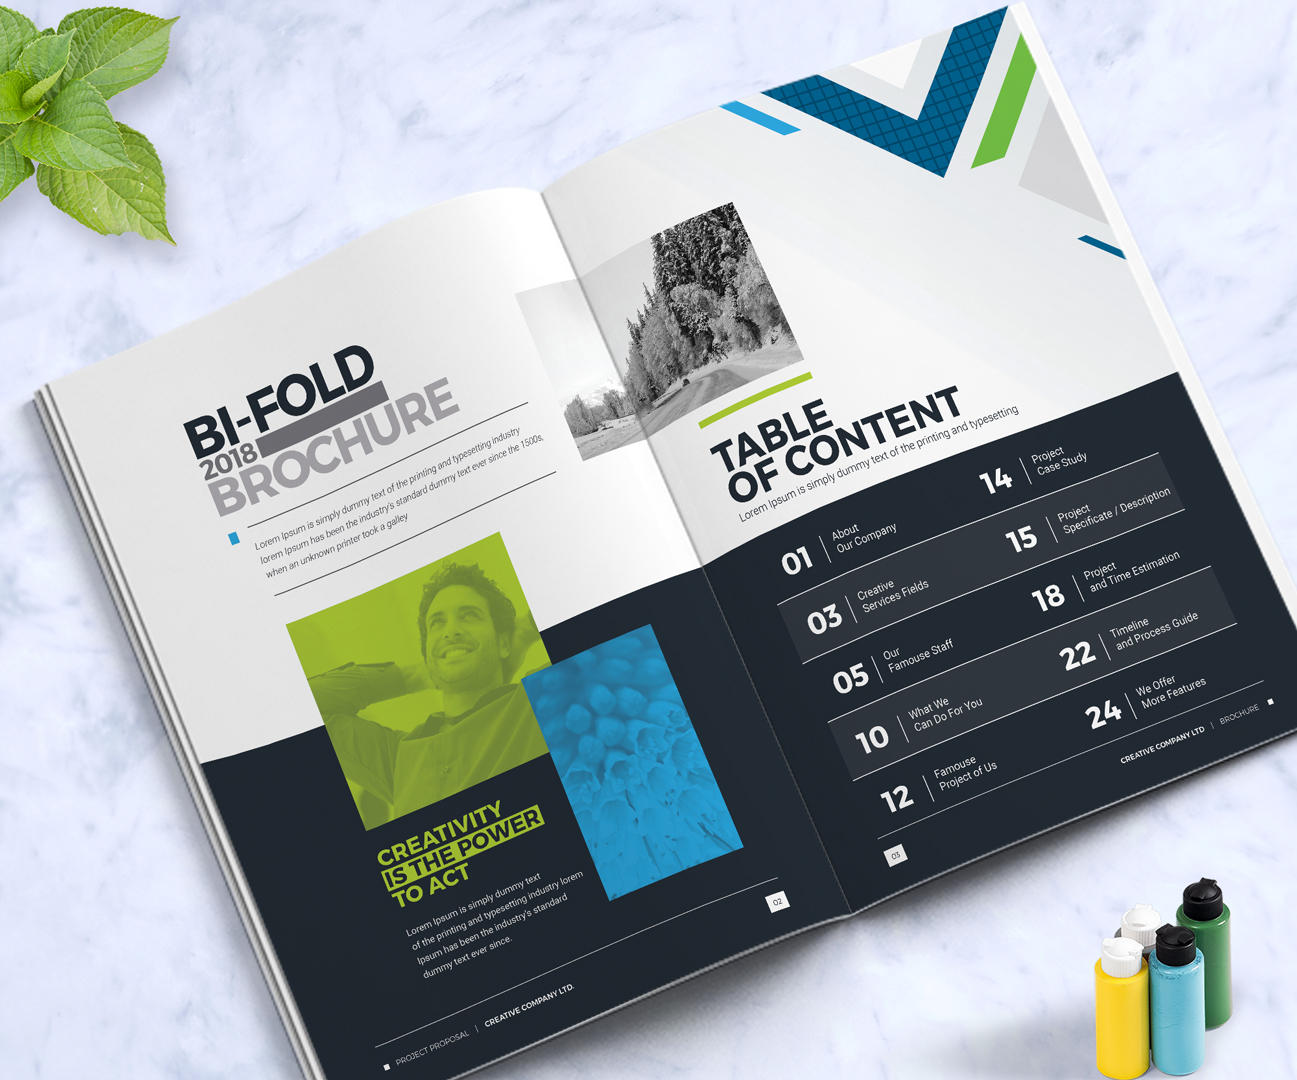 Business brochure design template indesign brochure company business brochure design template indesign brochure company profile annual report 2018 corporate identity maxwellsz